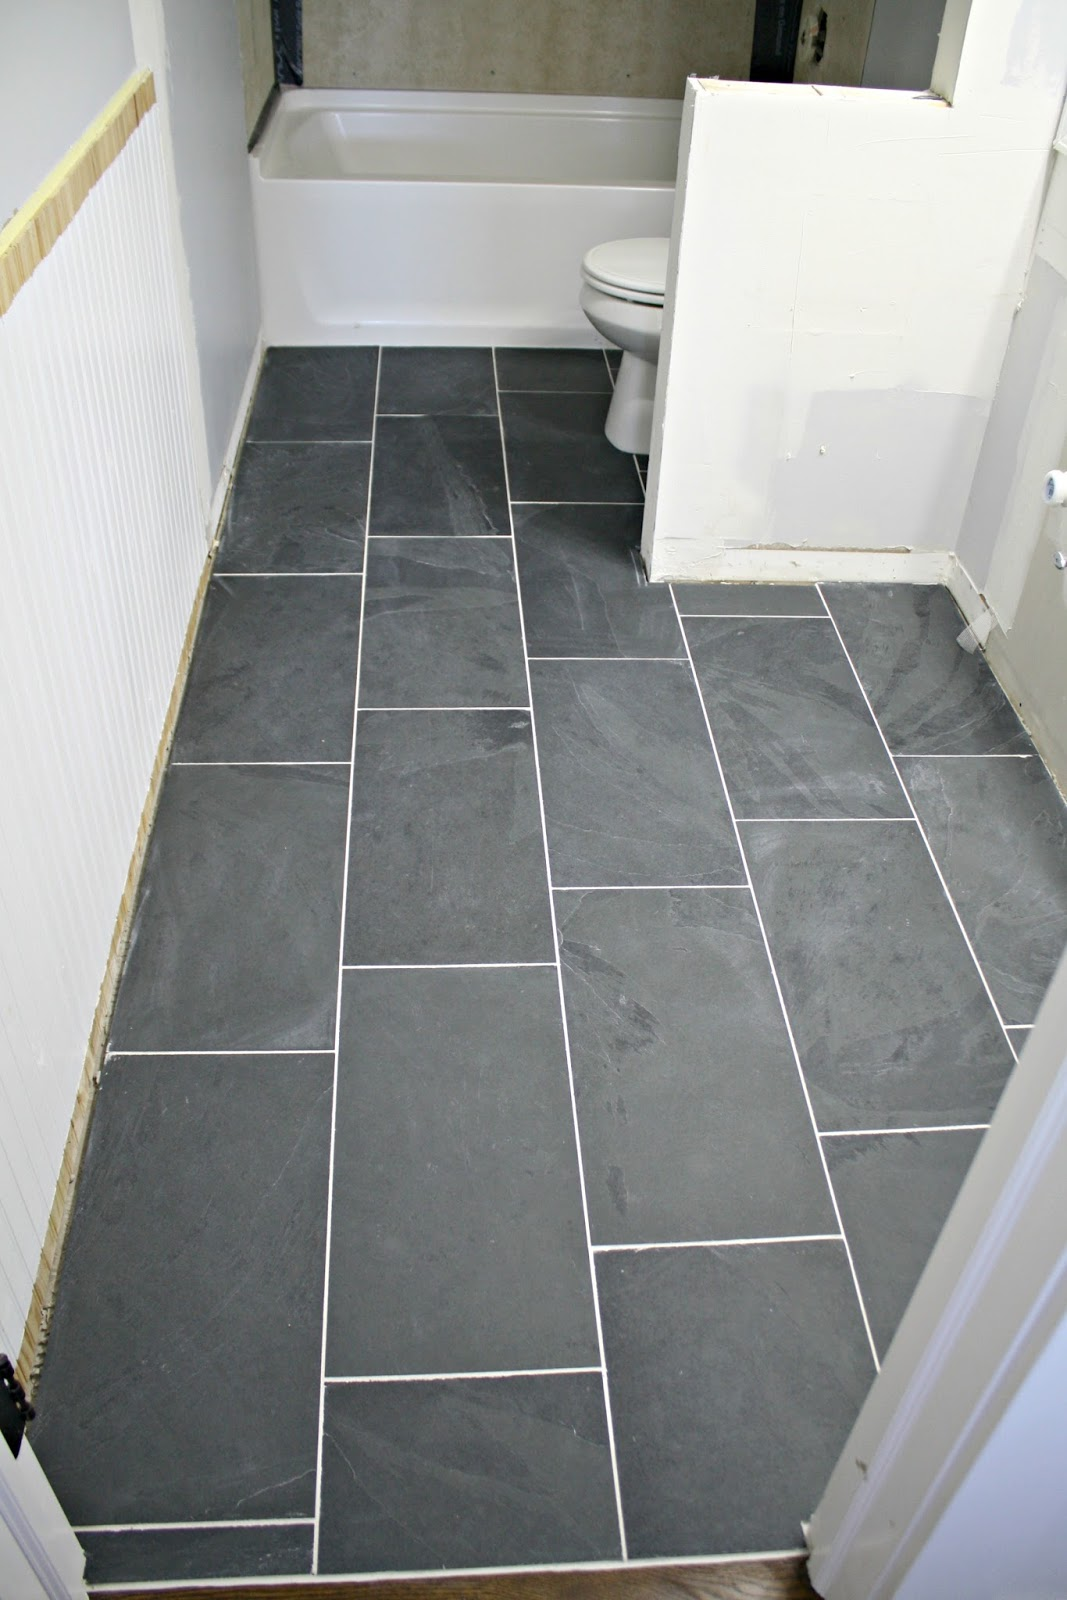 How To Tile A Bathroom Floor It 39 S Done From Thrifty Decor Chick